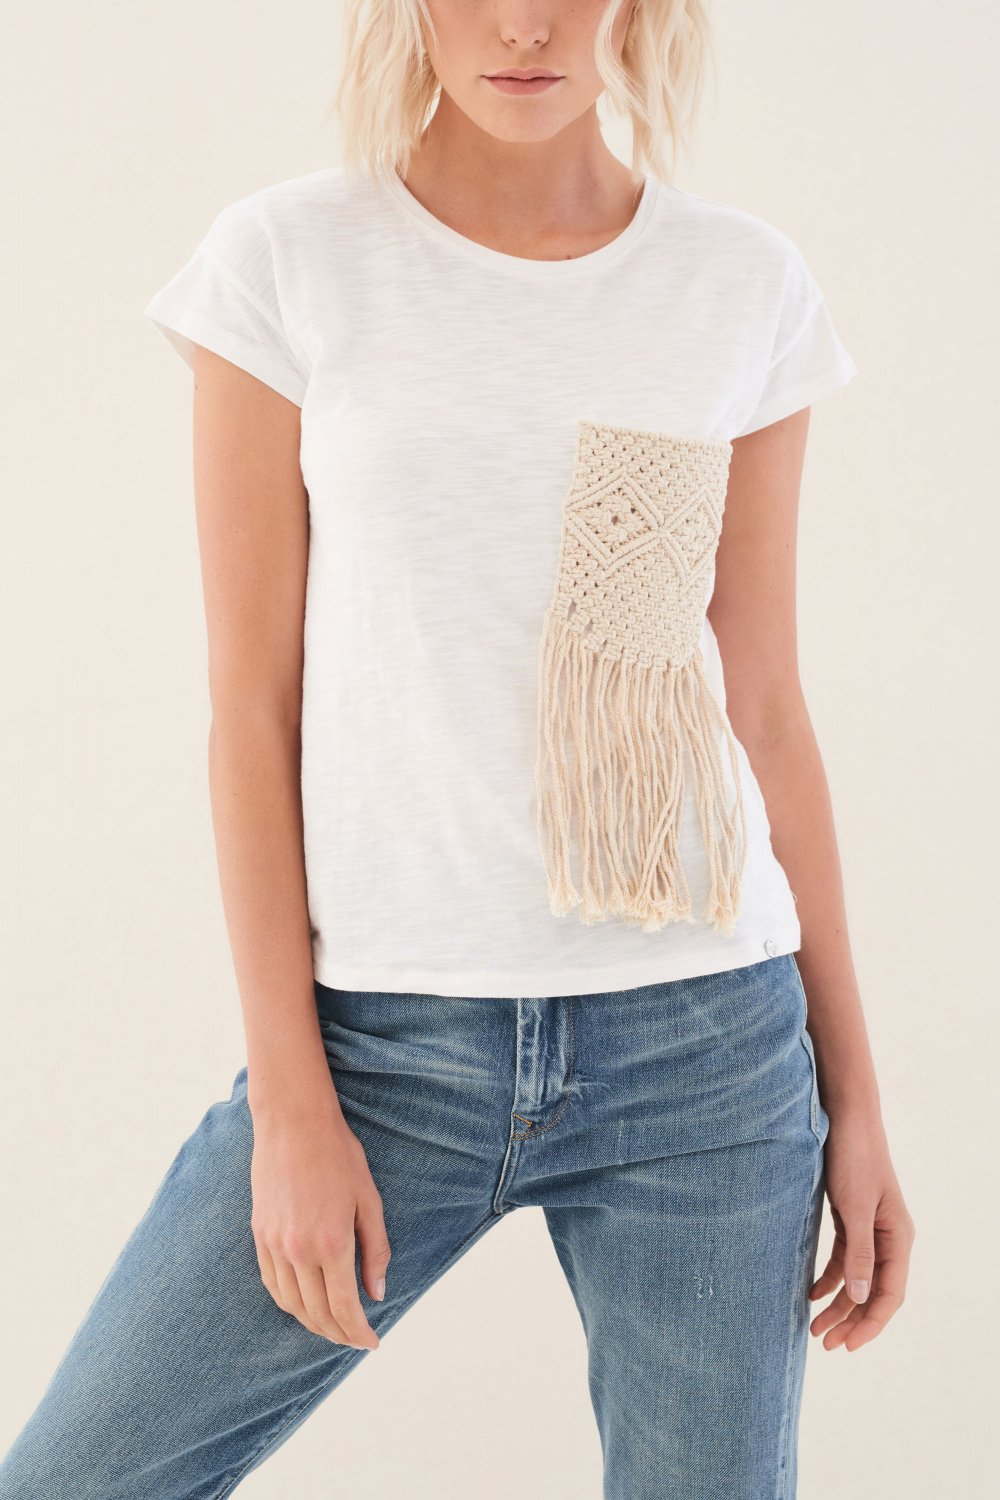 T-shirt with pocket in crochet - Salsa